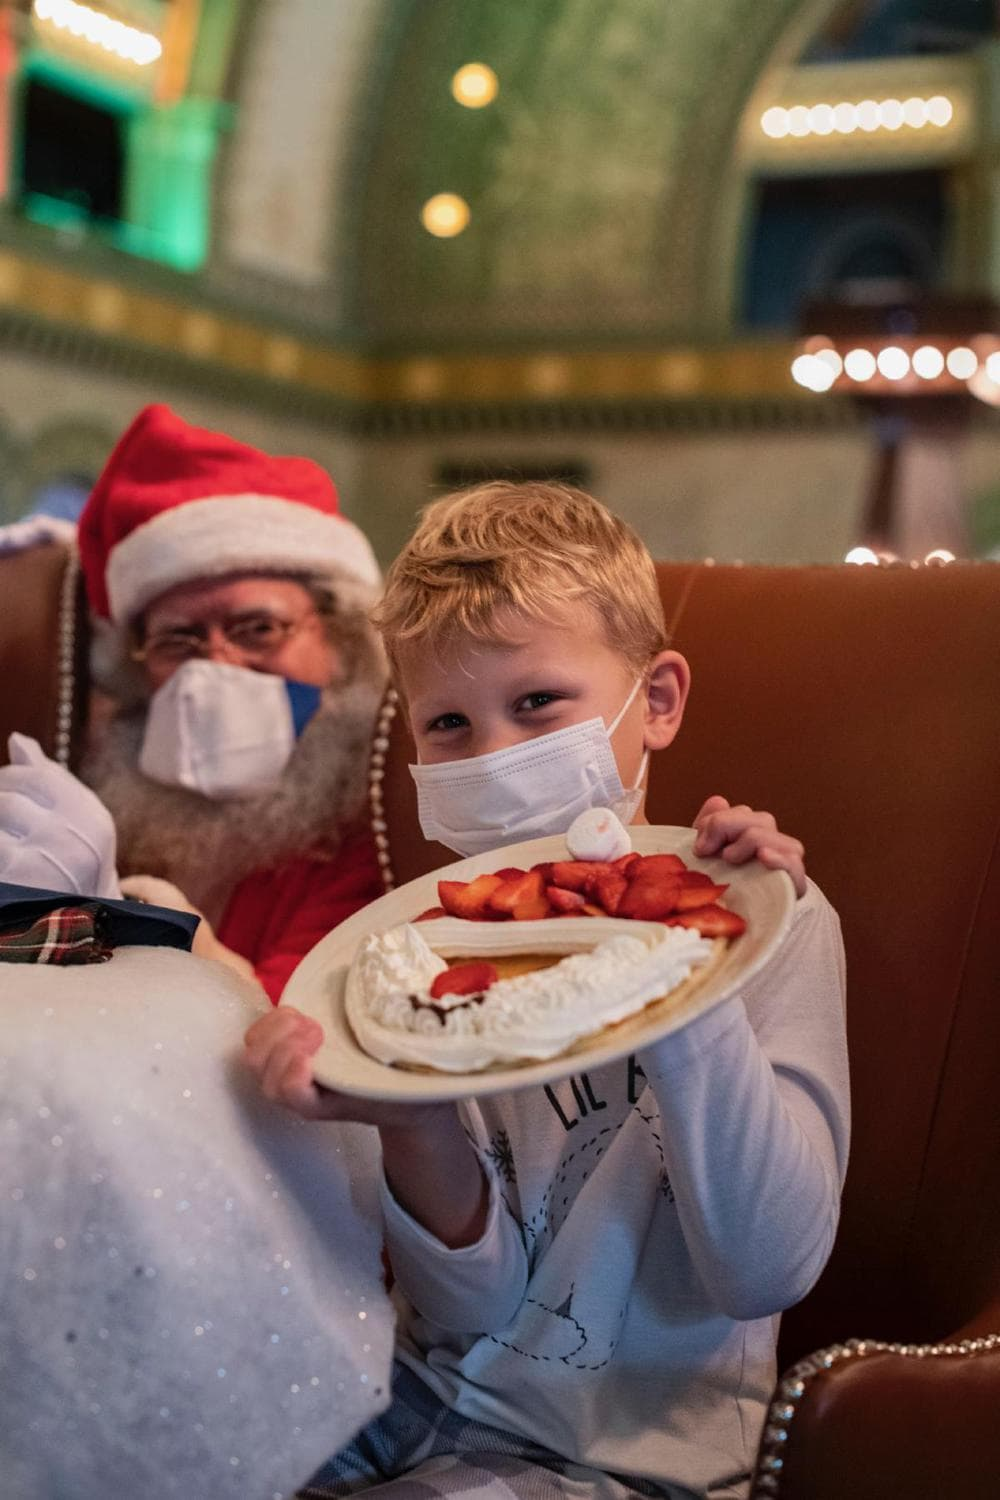 Kid in mask with pancake and Santa